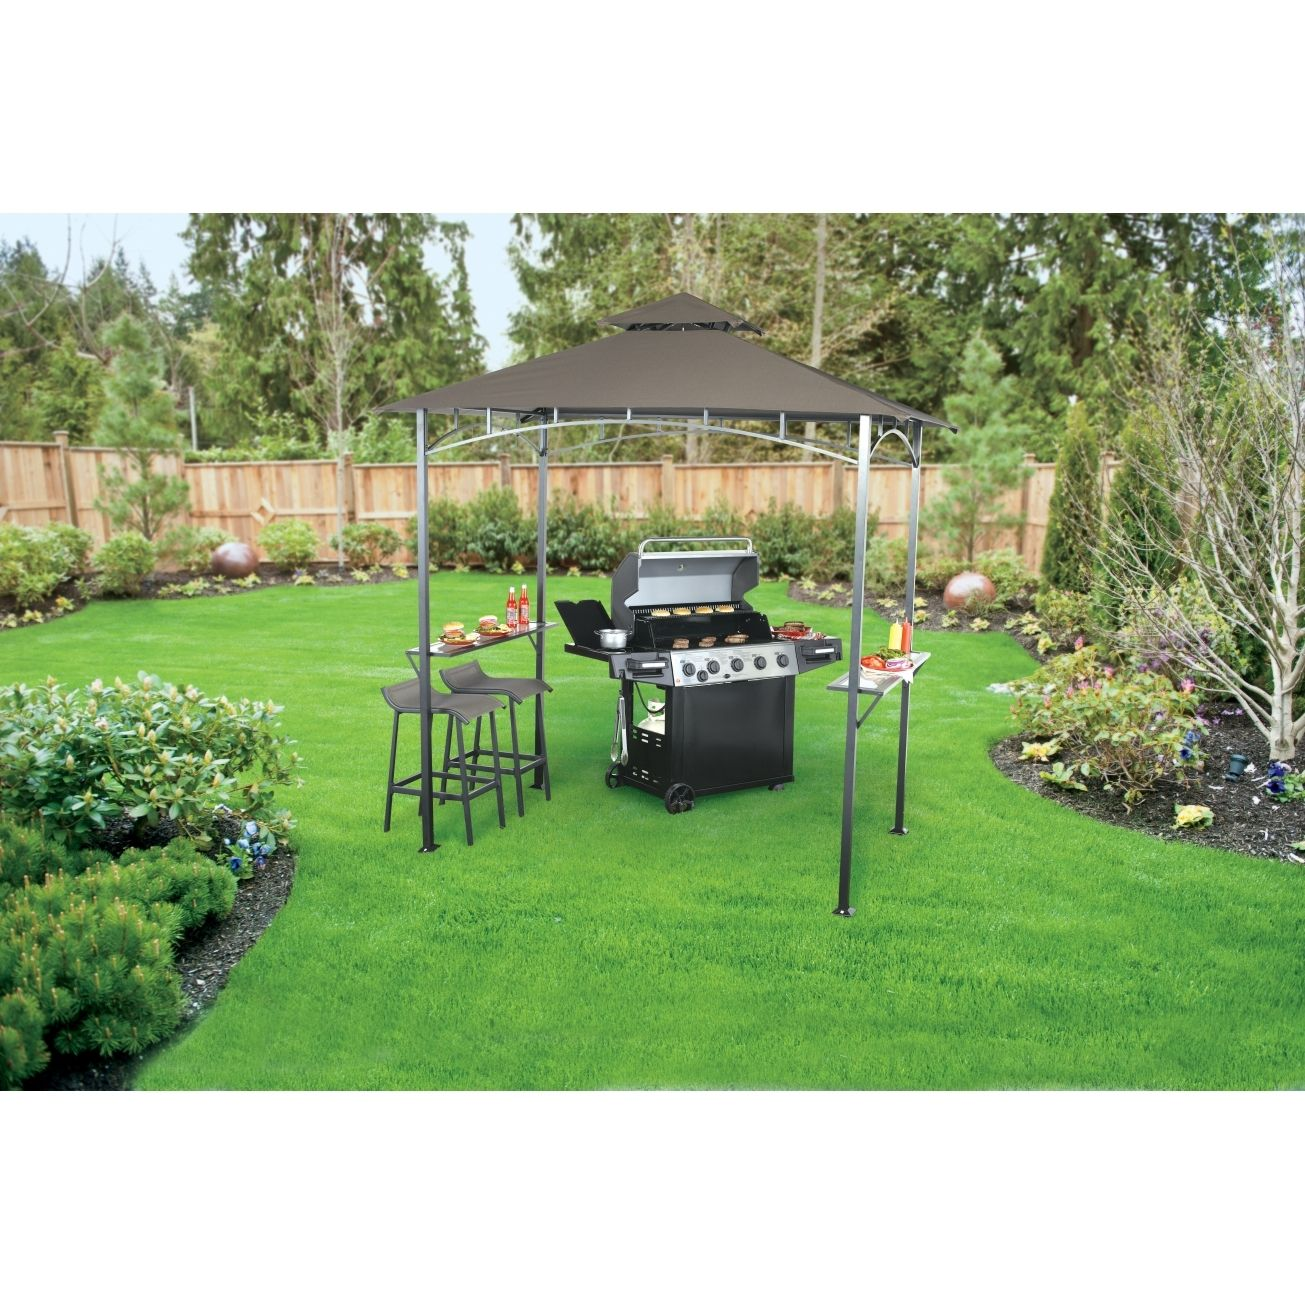 living accents grill gazebo cover http web2review info